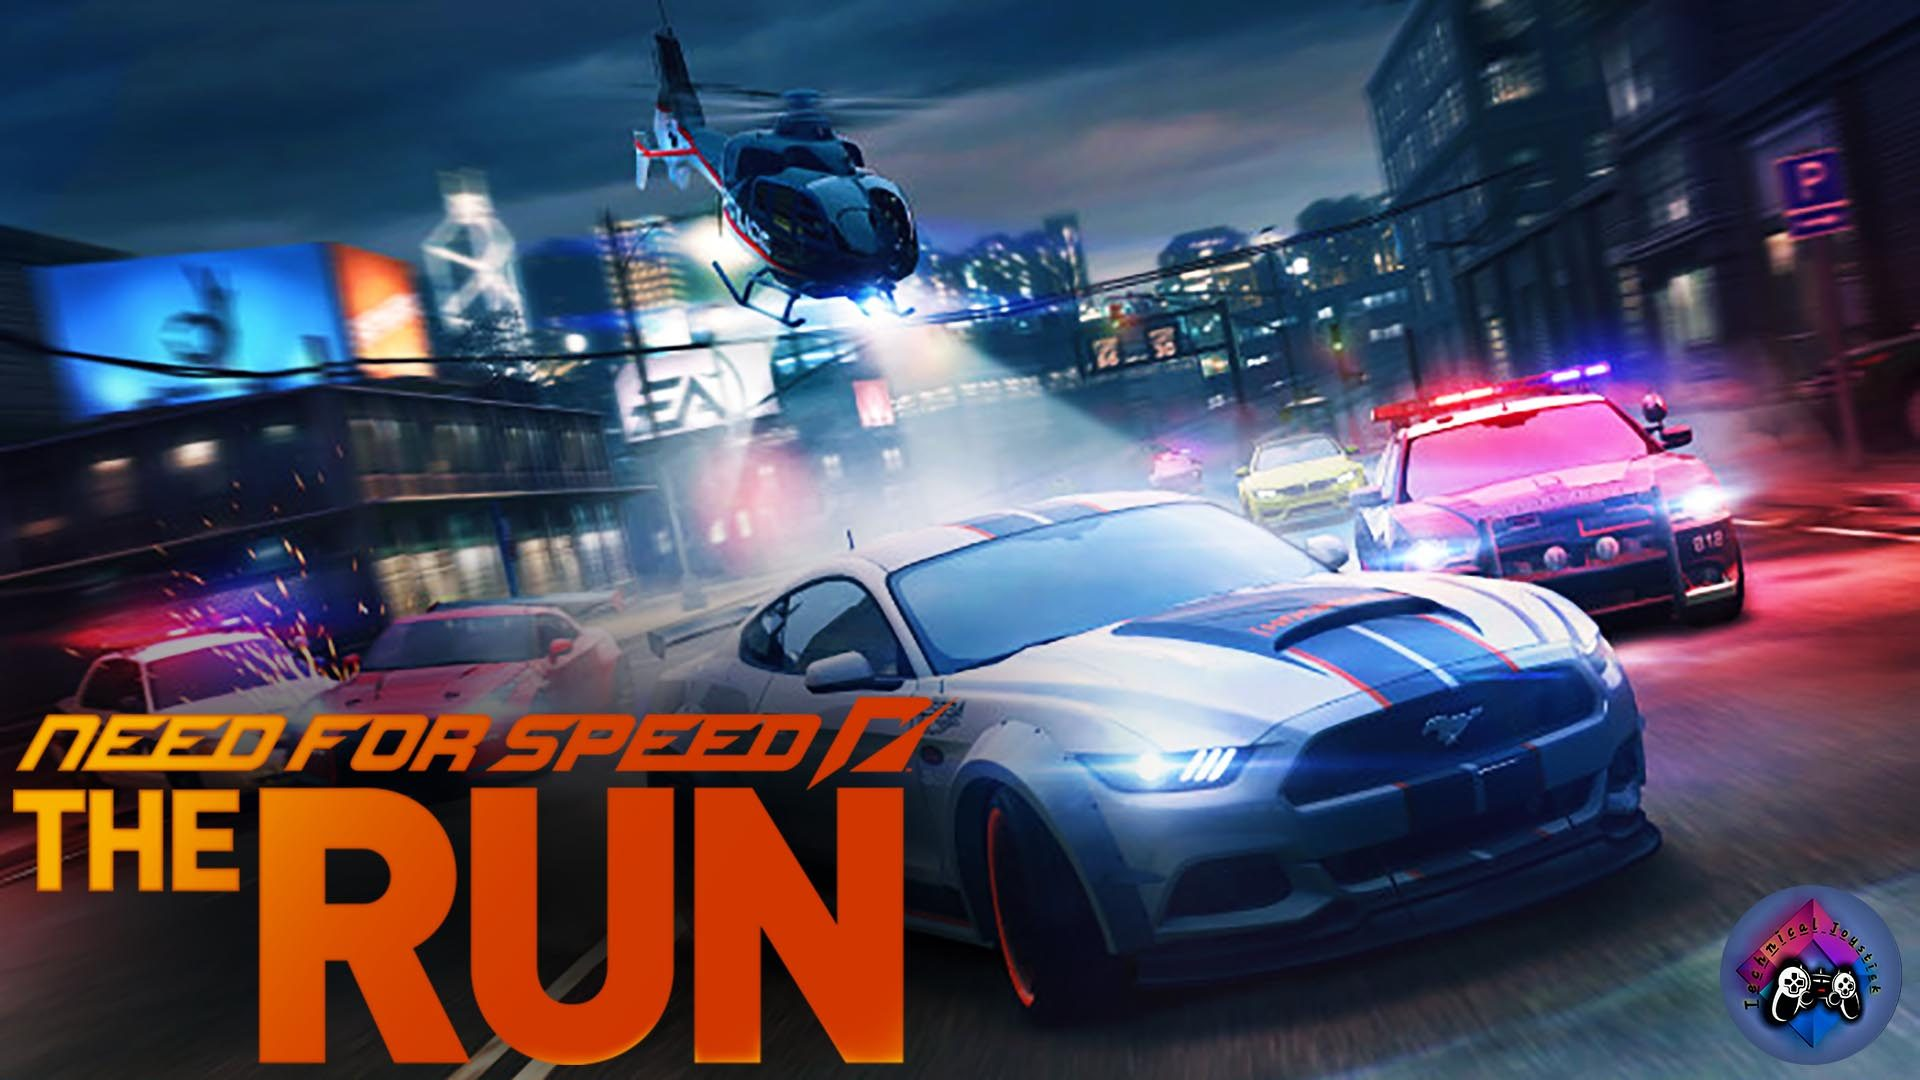 need-for-speed-700x394-7230834